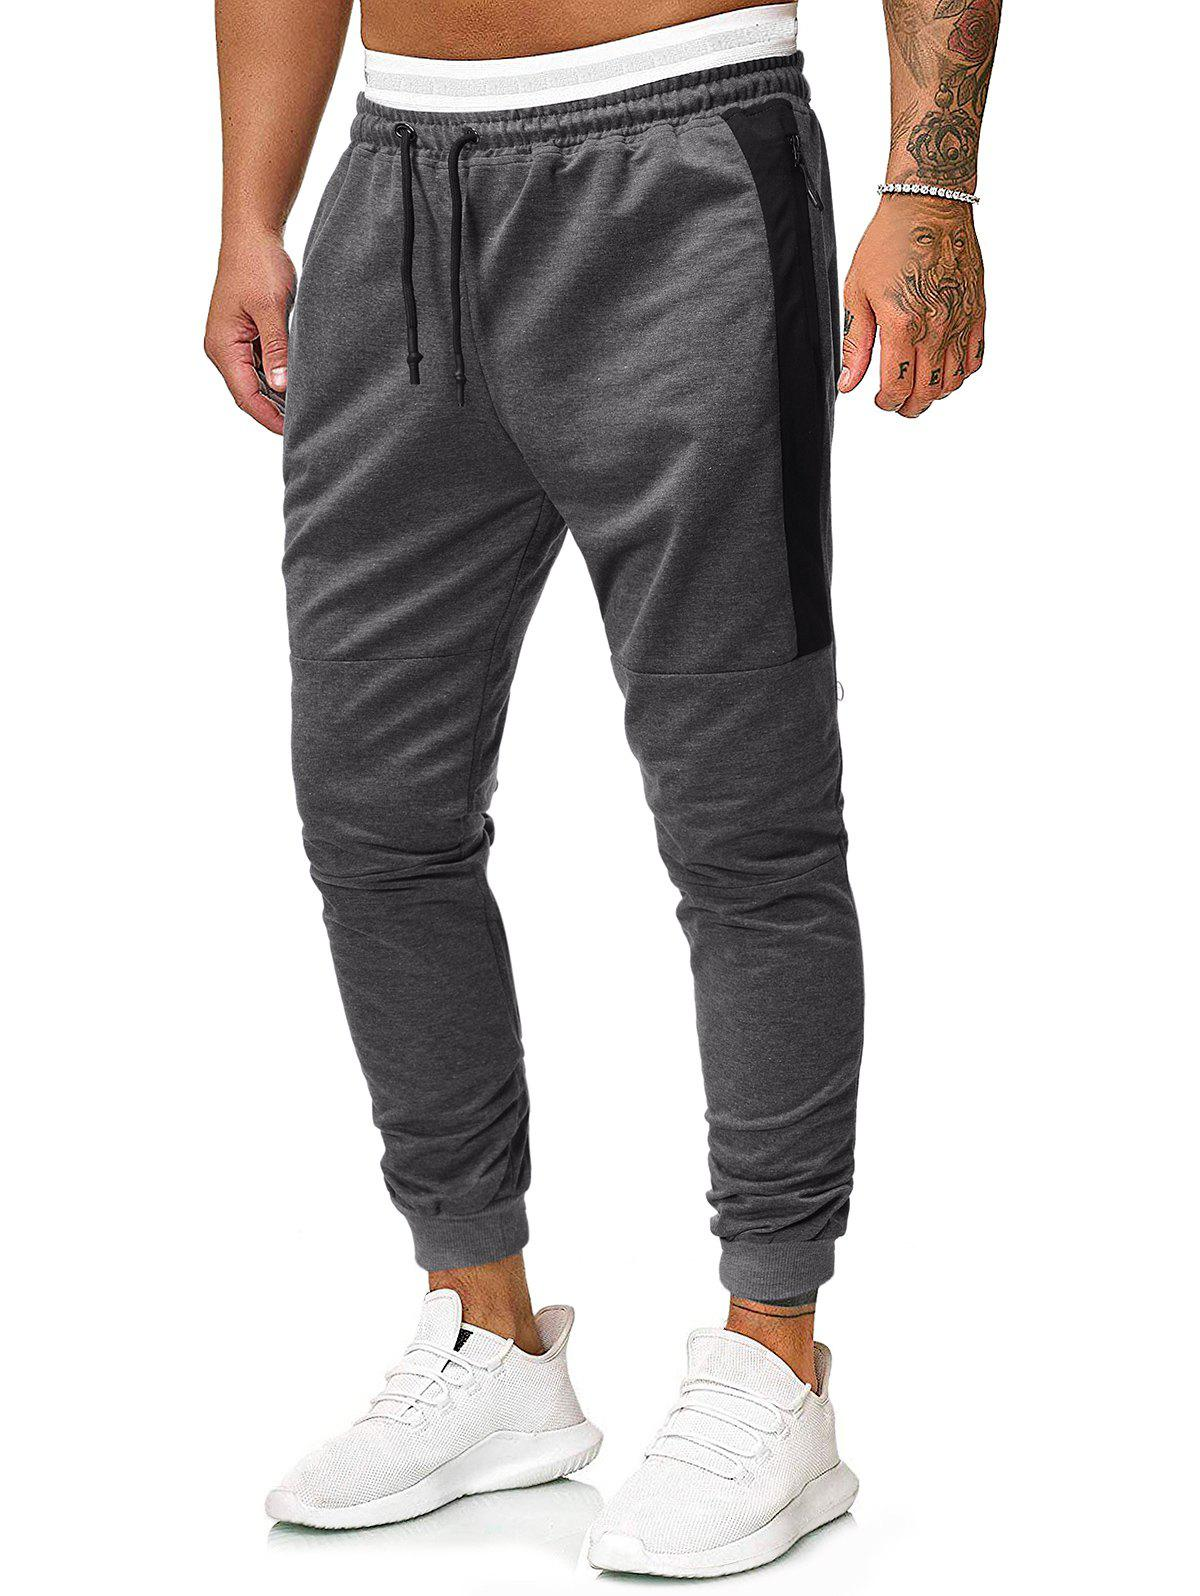 Contrast Patch Casual Pencil Pants - GRAY 2XL